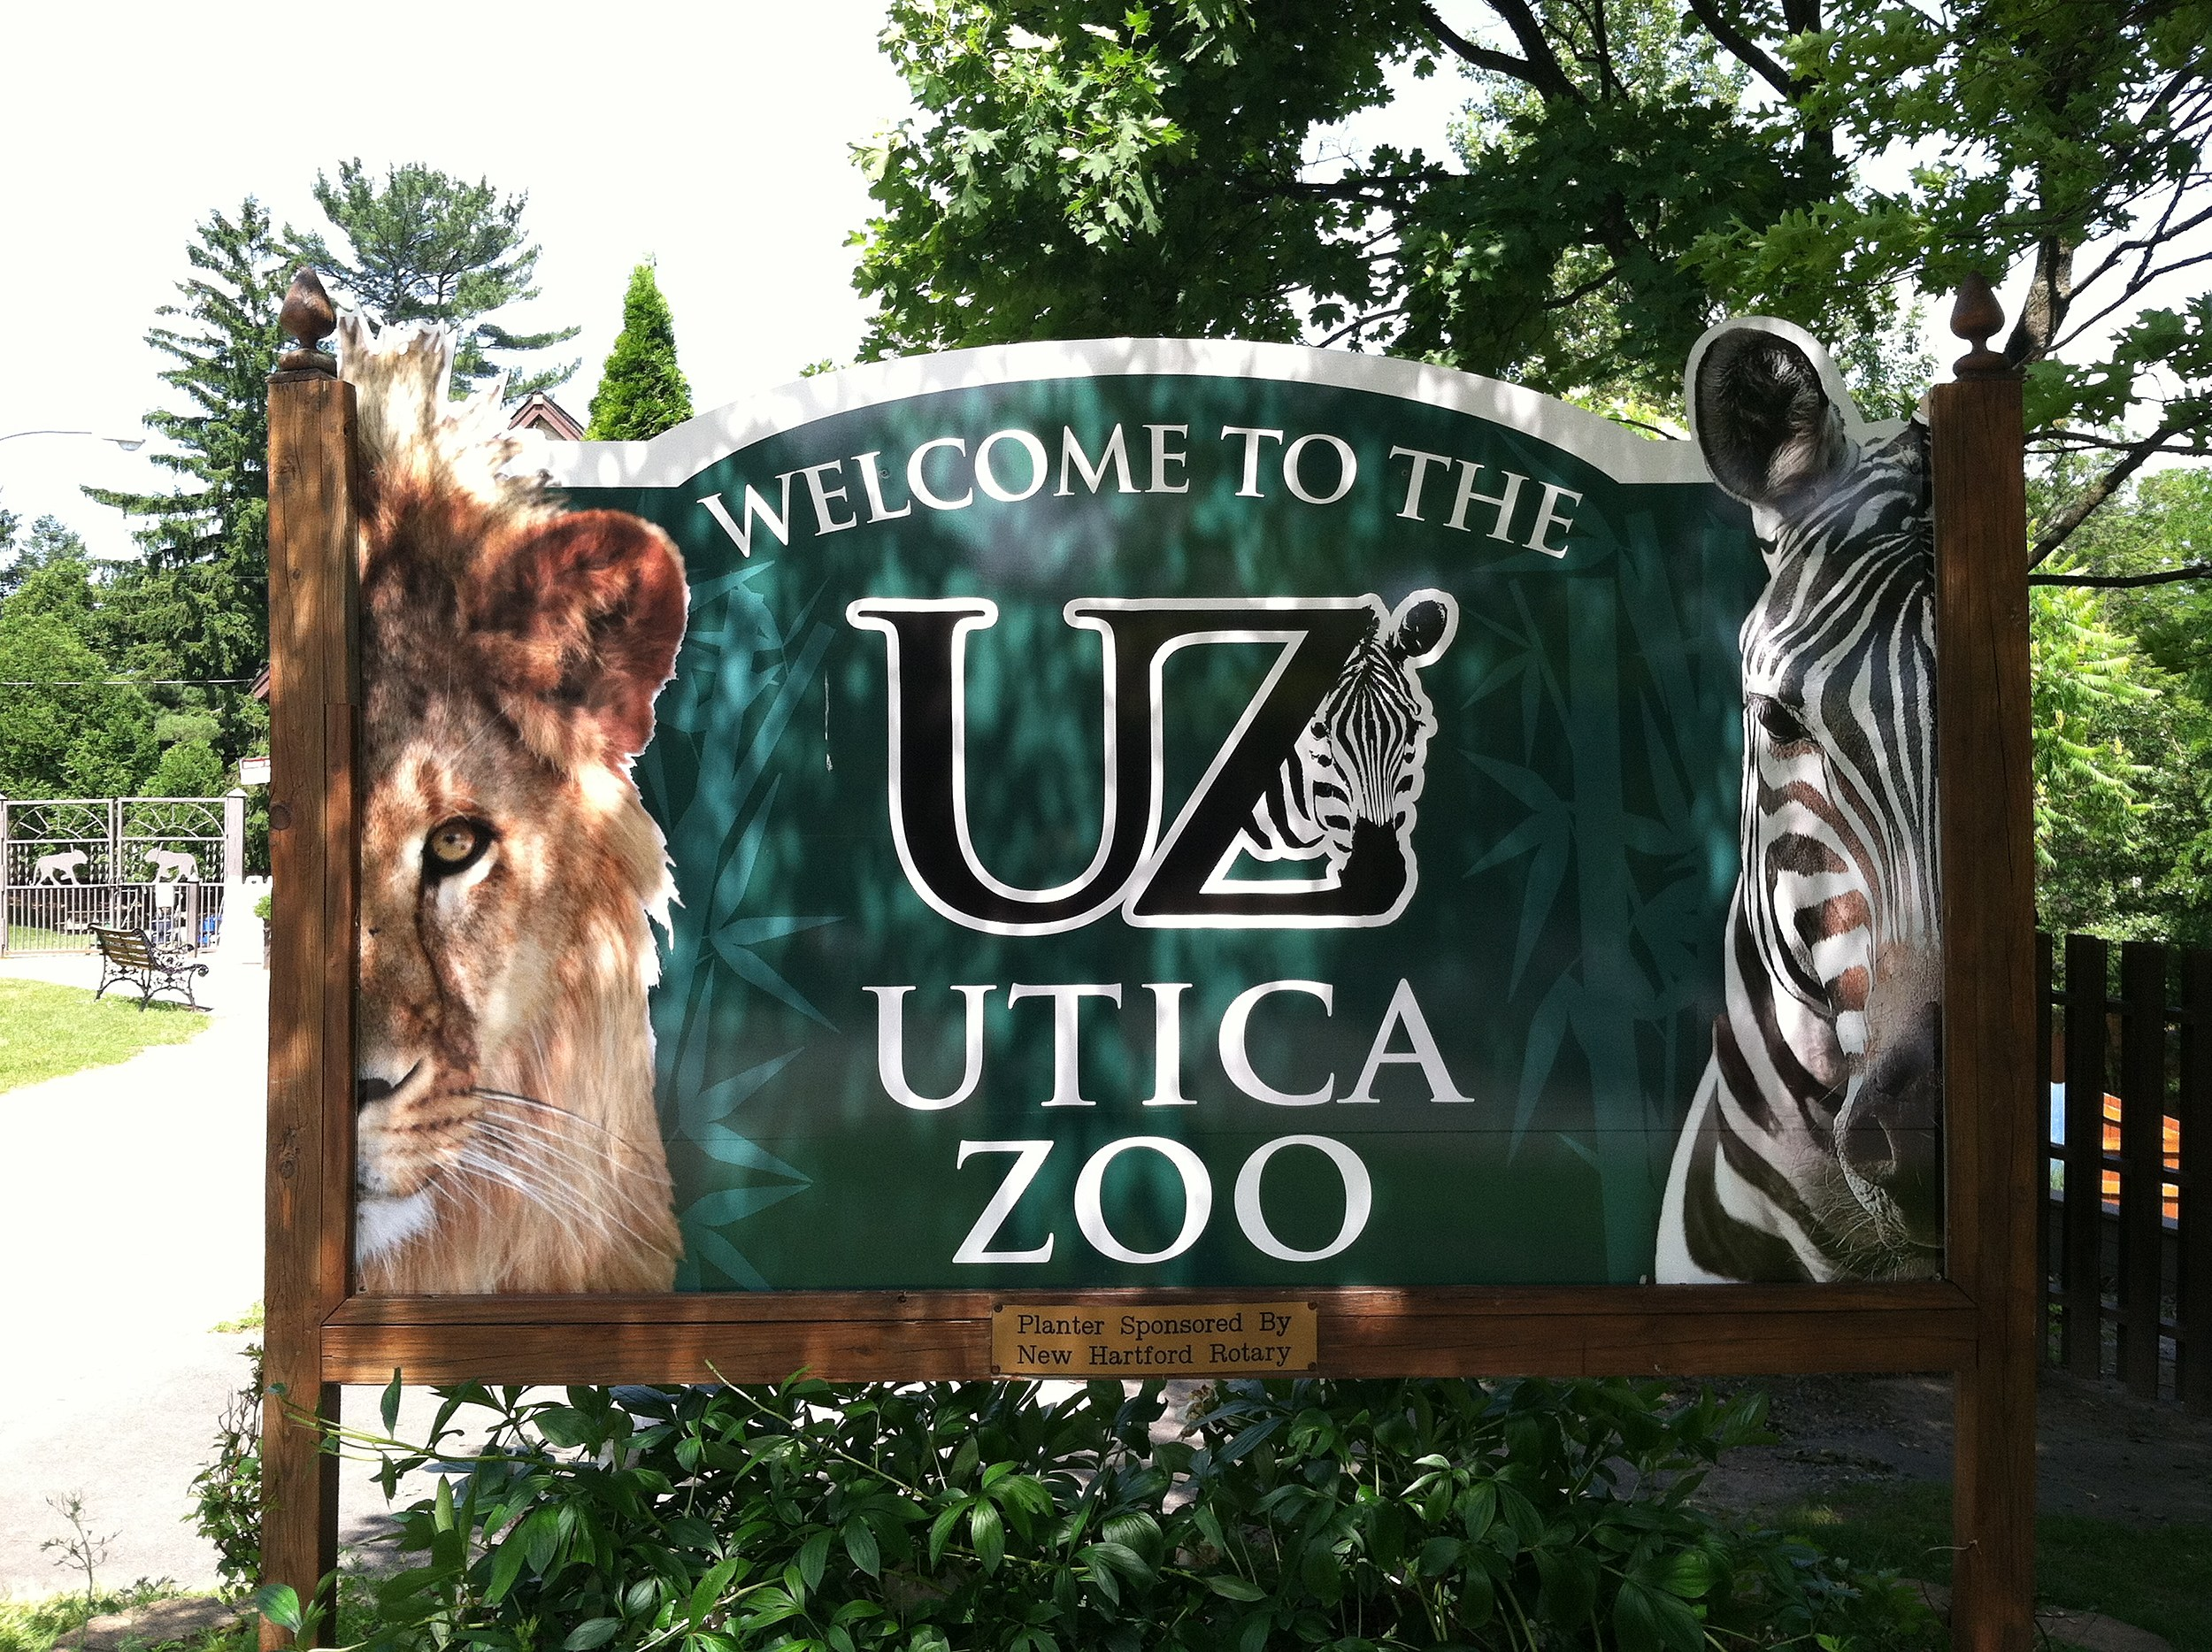 Stop By The Utica Zoo This Sunday July 20th For Free Admission And